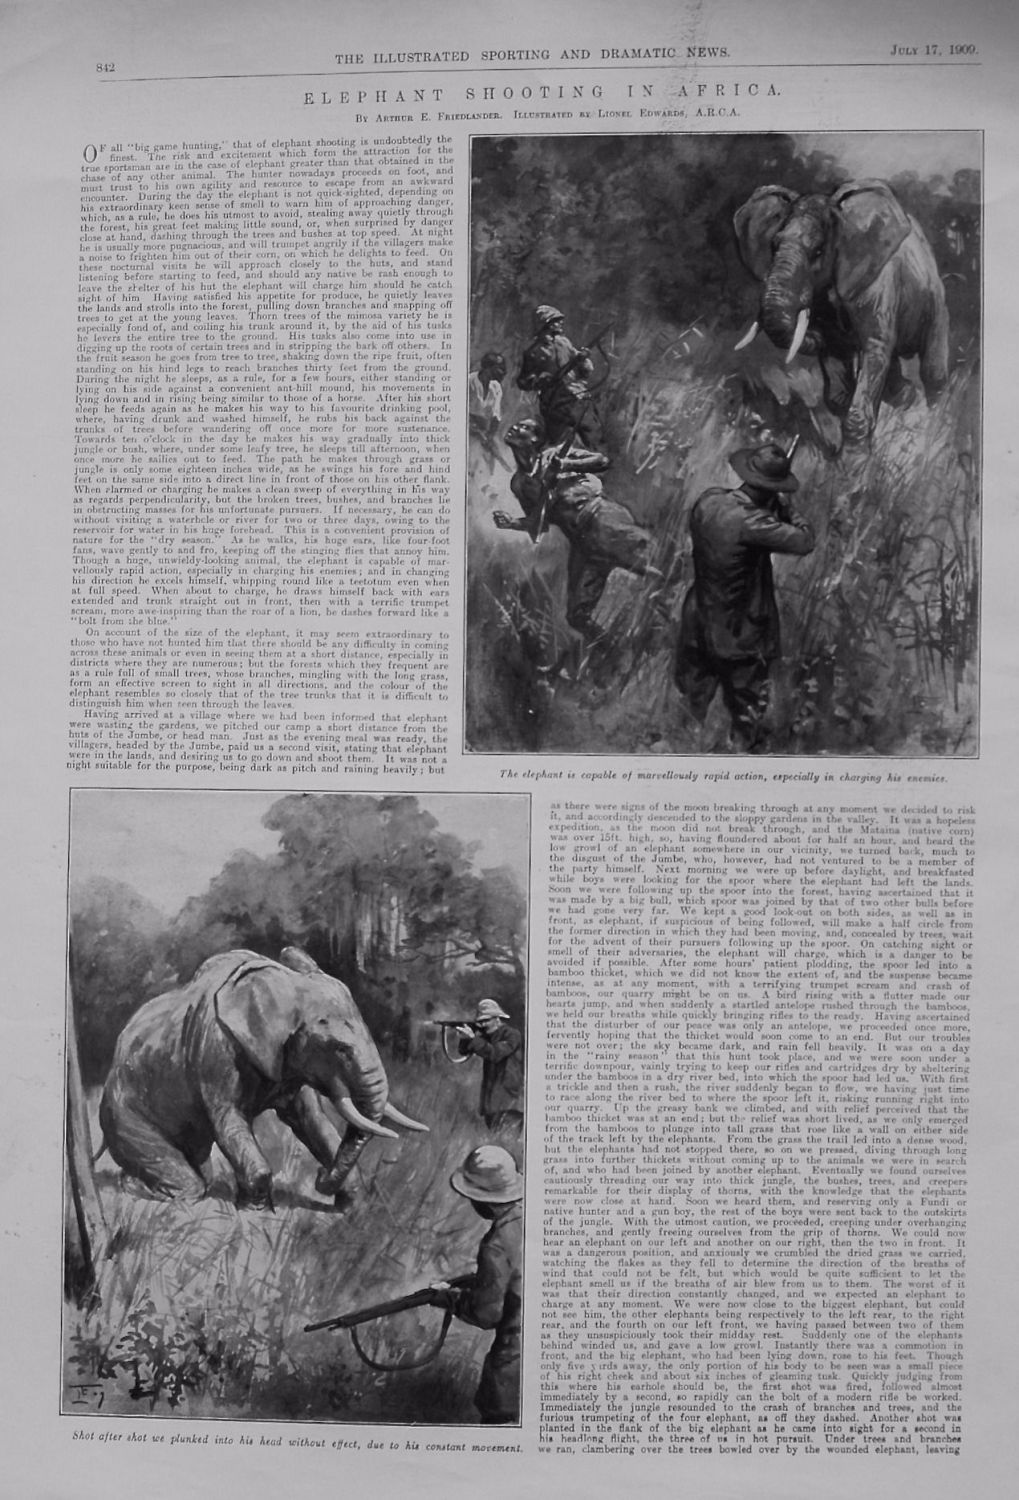 Elephant Shooting in Africa. 1909